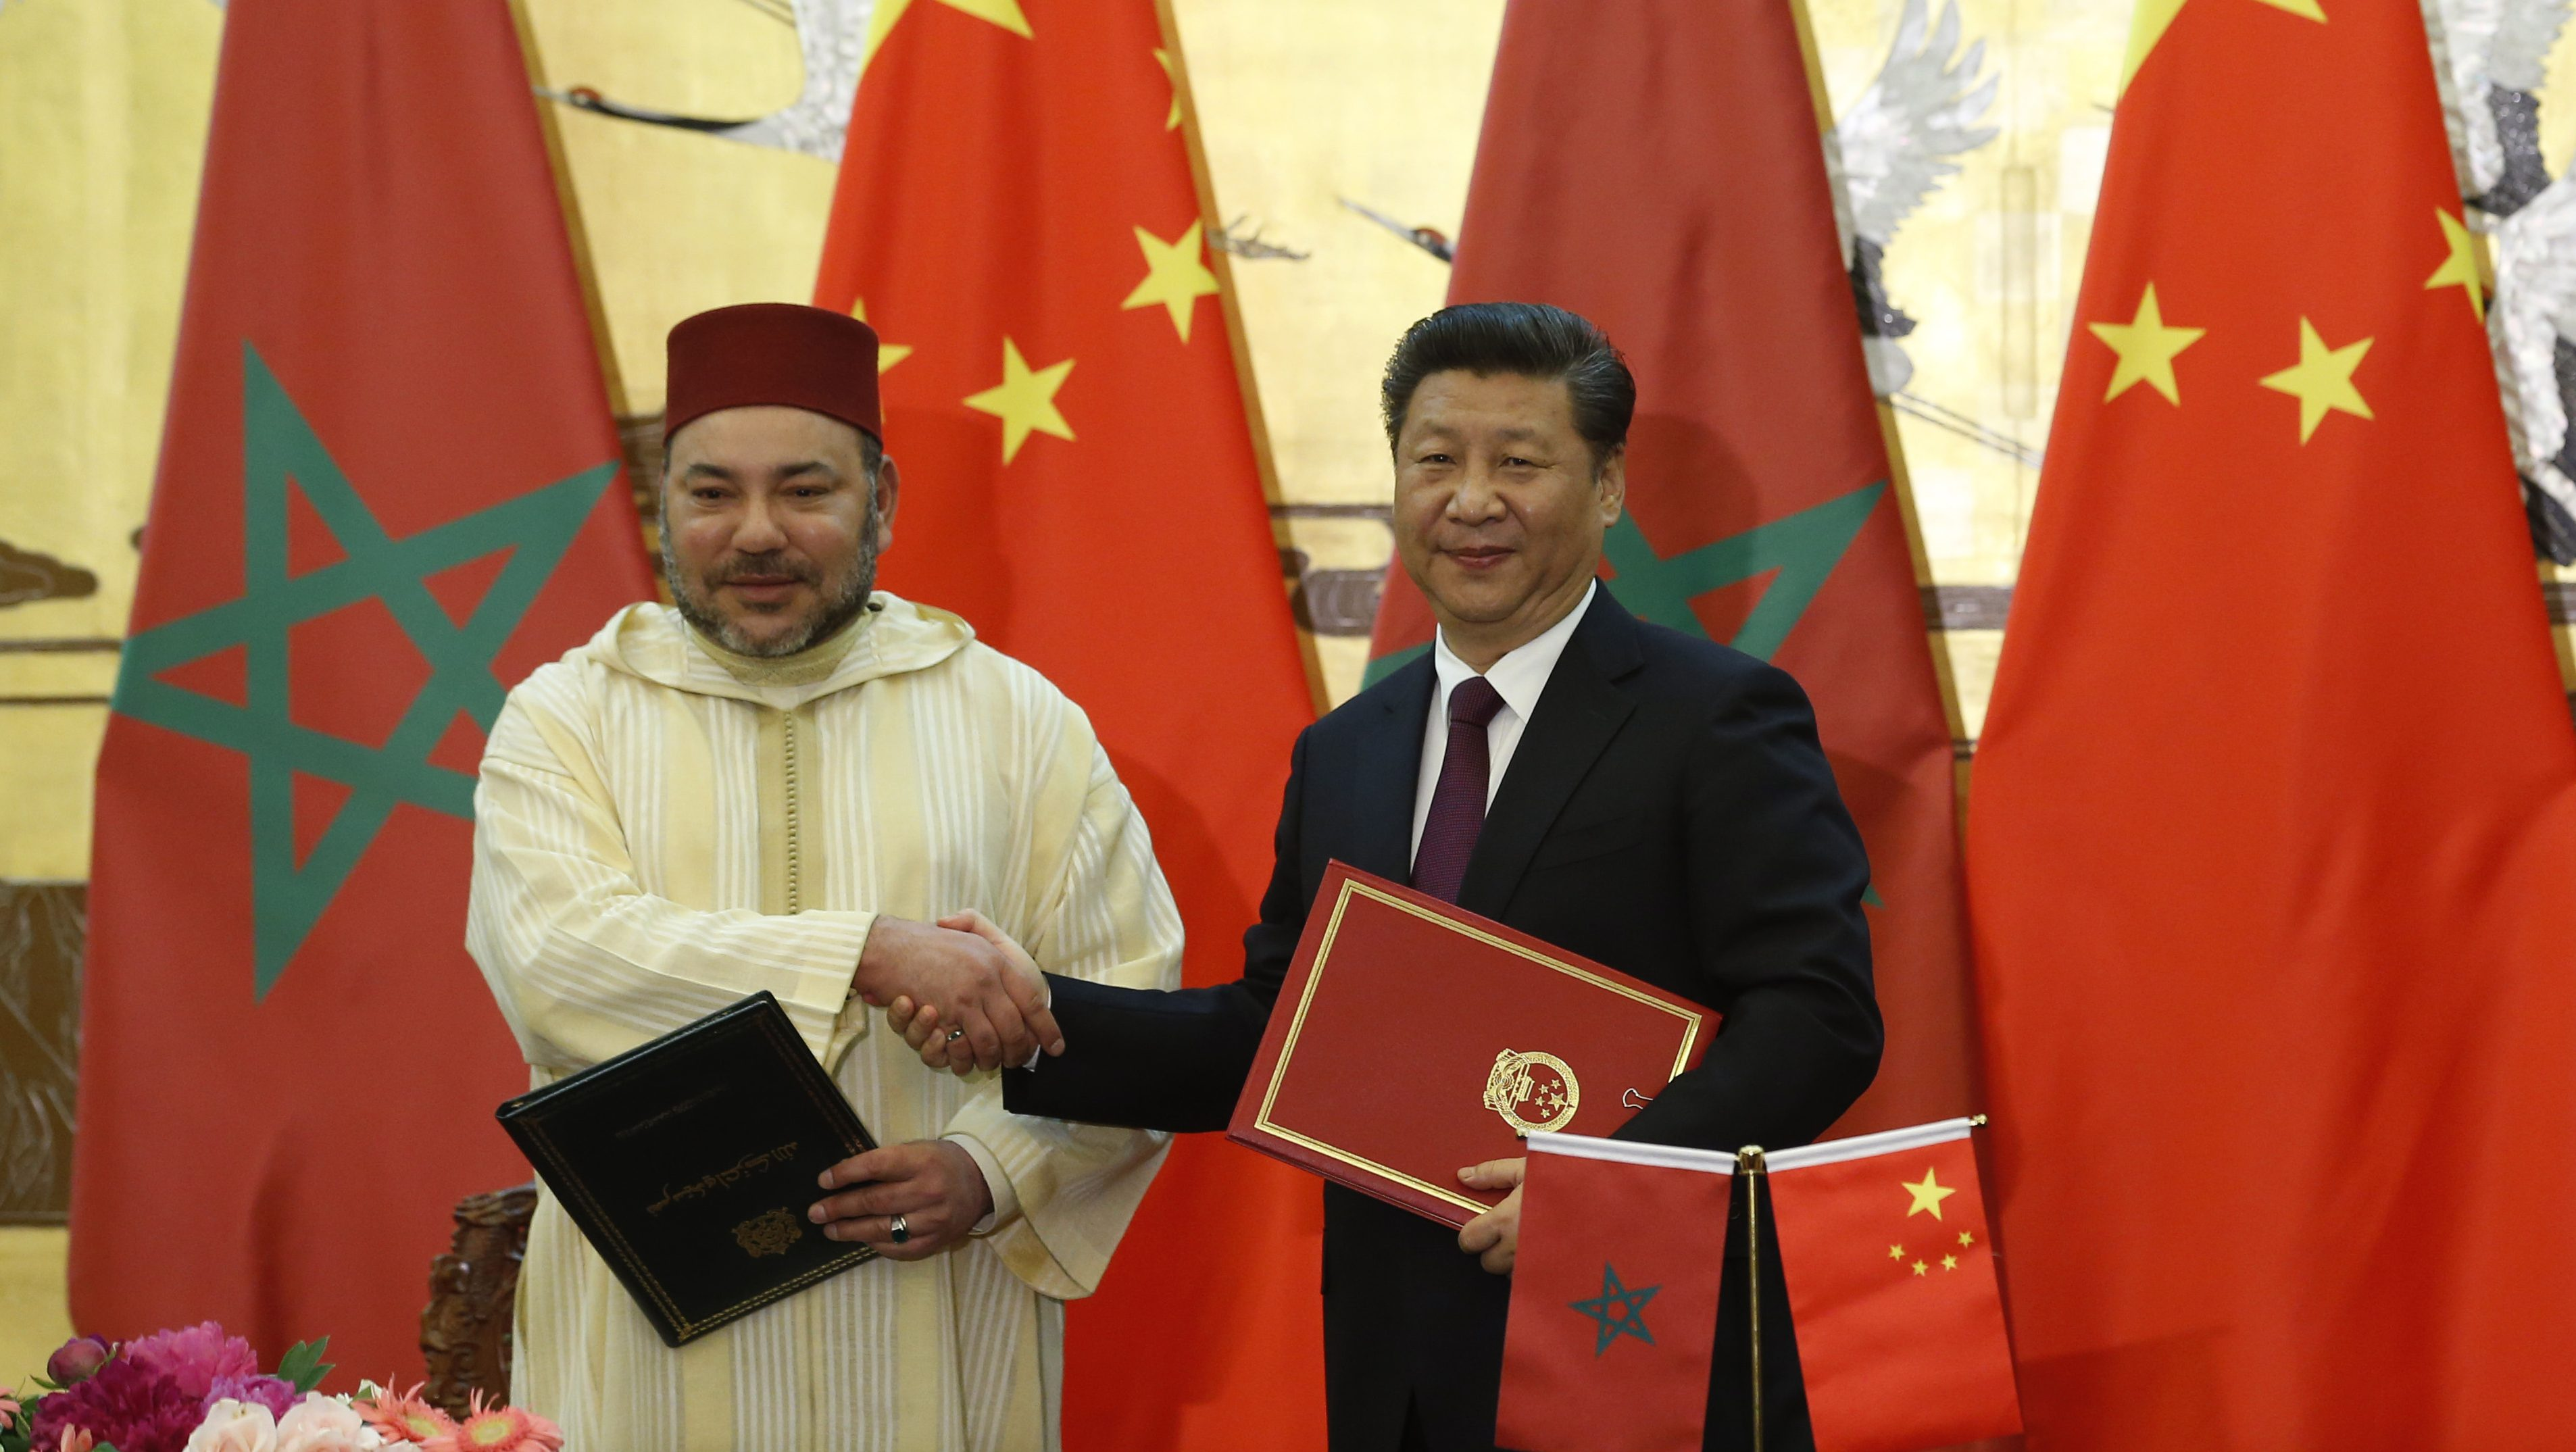 Chinese President Xi Jinping, right, and Moroccan King Mohammed VI pose for photographers as they shake hands after signing documents during a signing ceremony at the Great Hall of People in Beijing, China, Wednesday, May 11, 2016. (Kim Kyung-hoon/Pool Photo via AP)